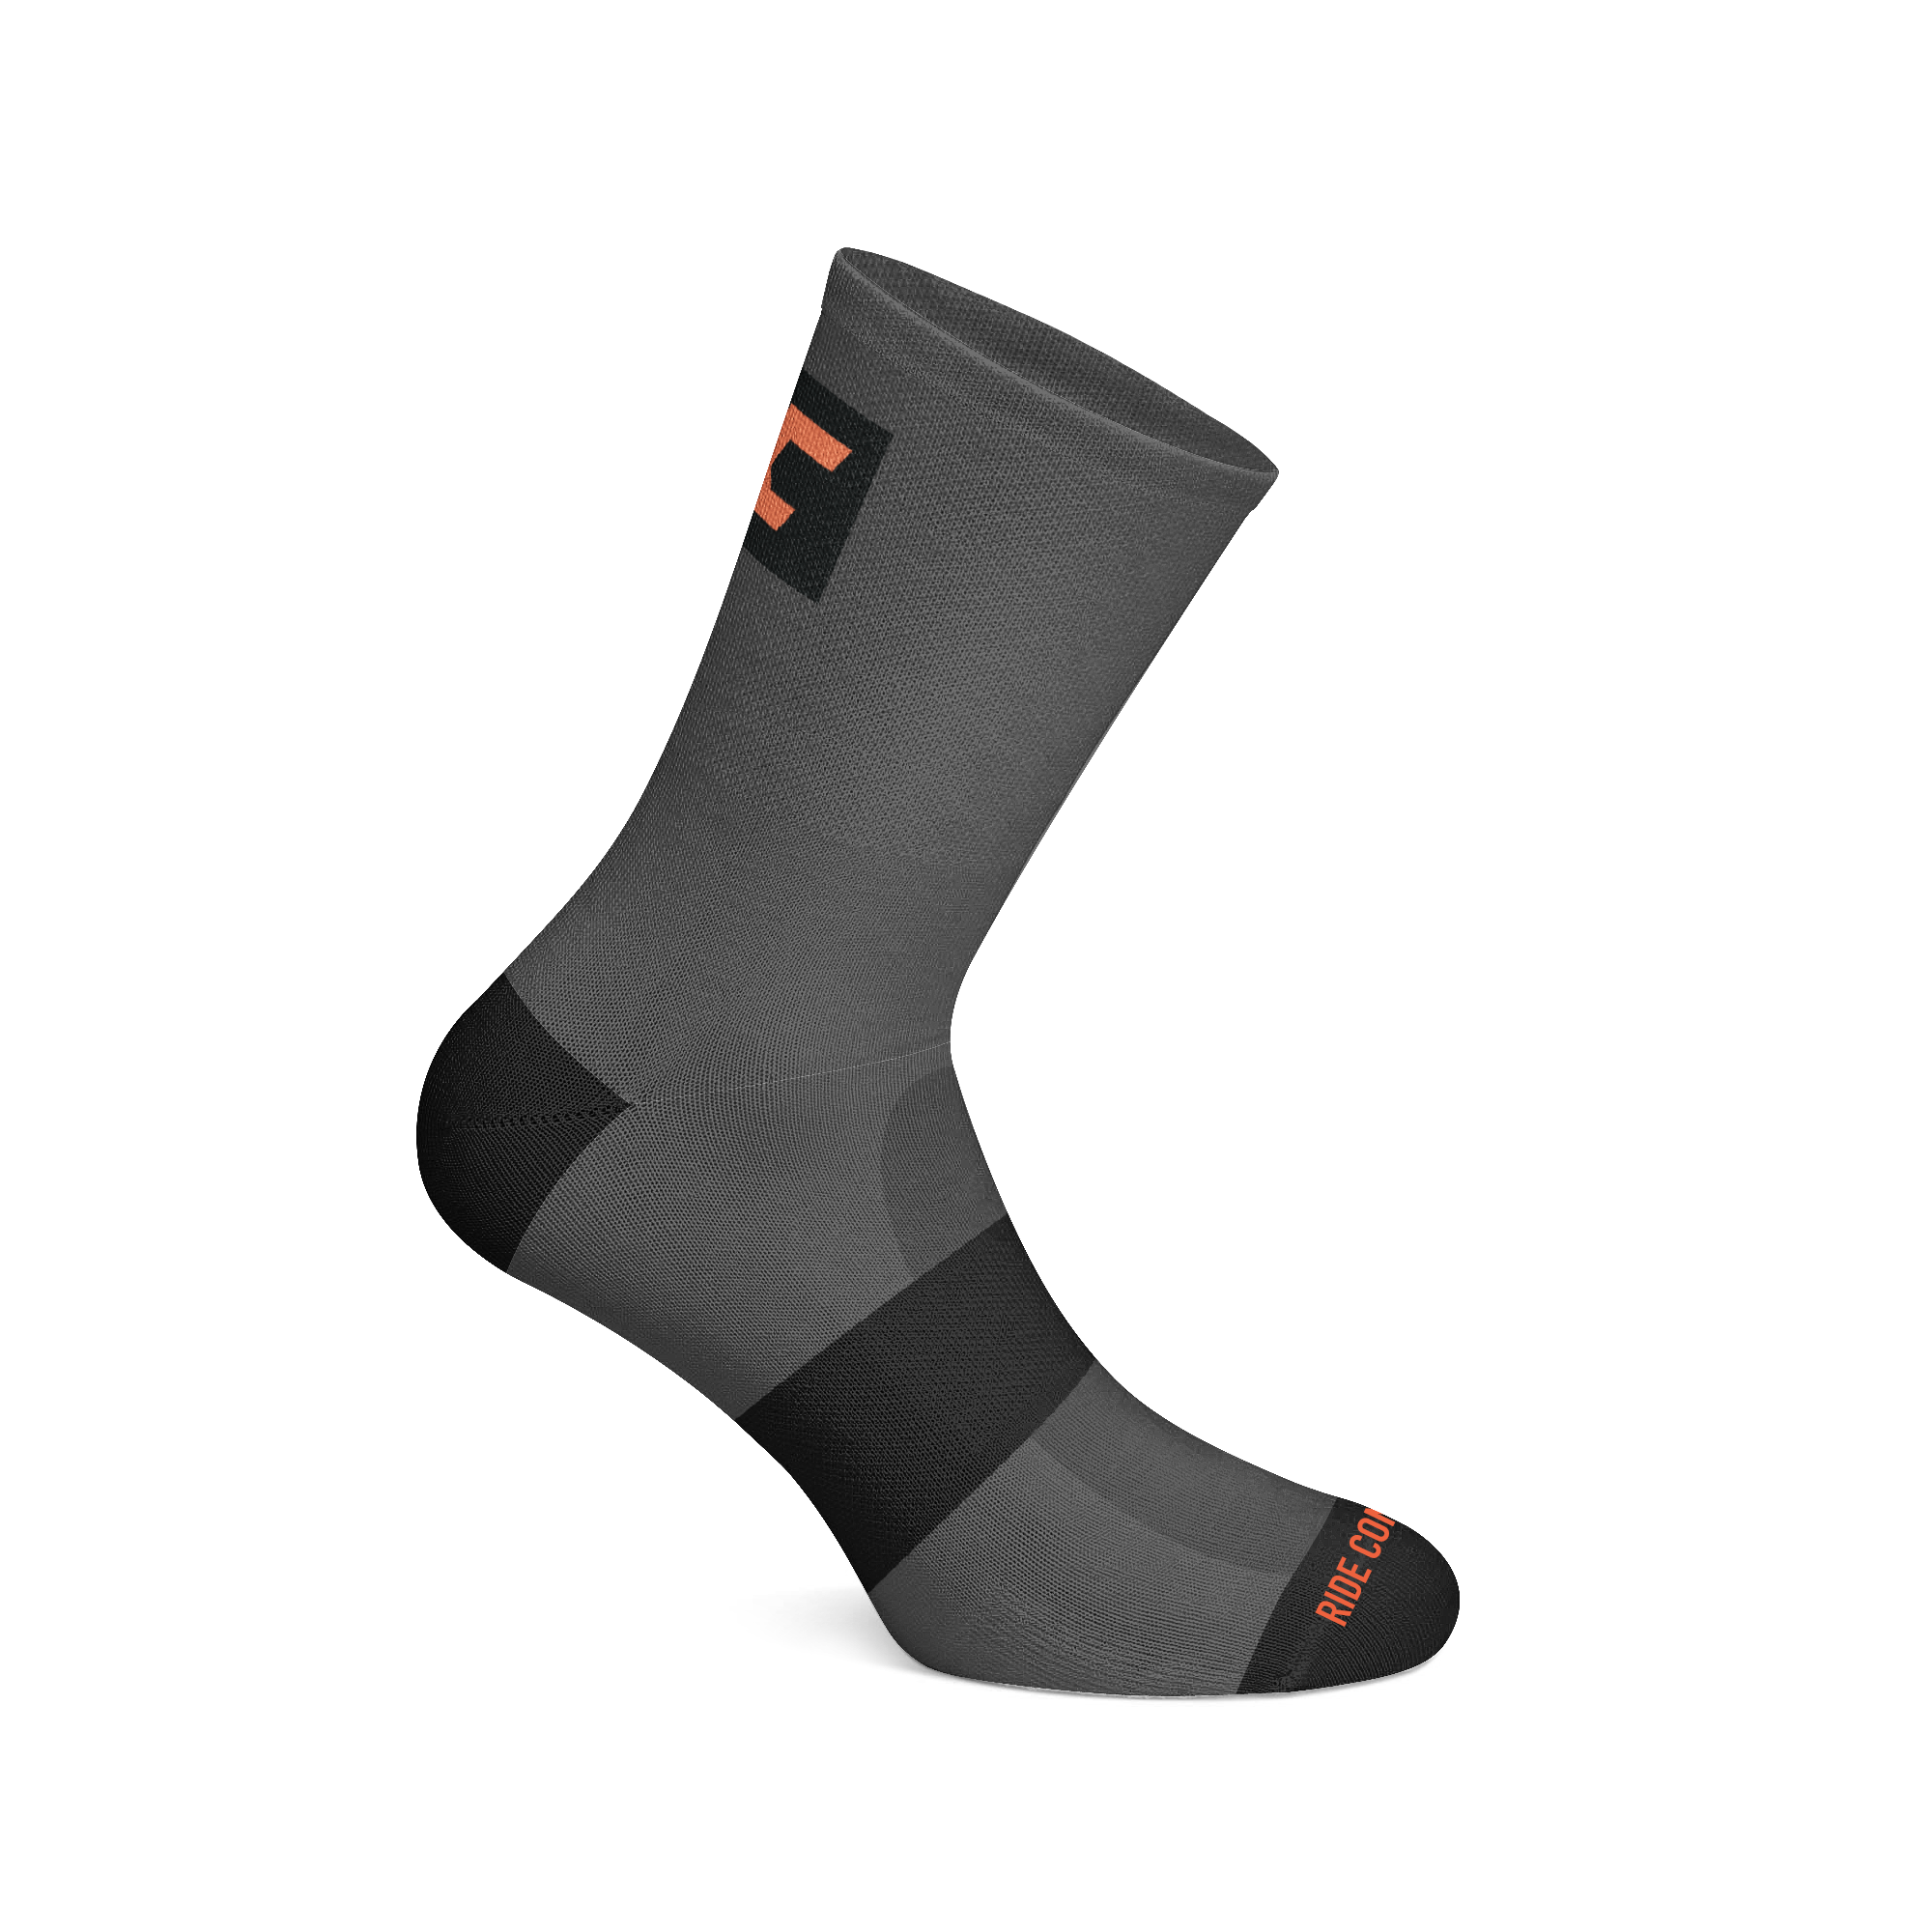 Men's Quickdraw Socks - Synthetic Mid-Crew